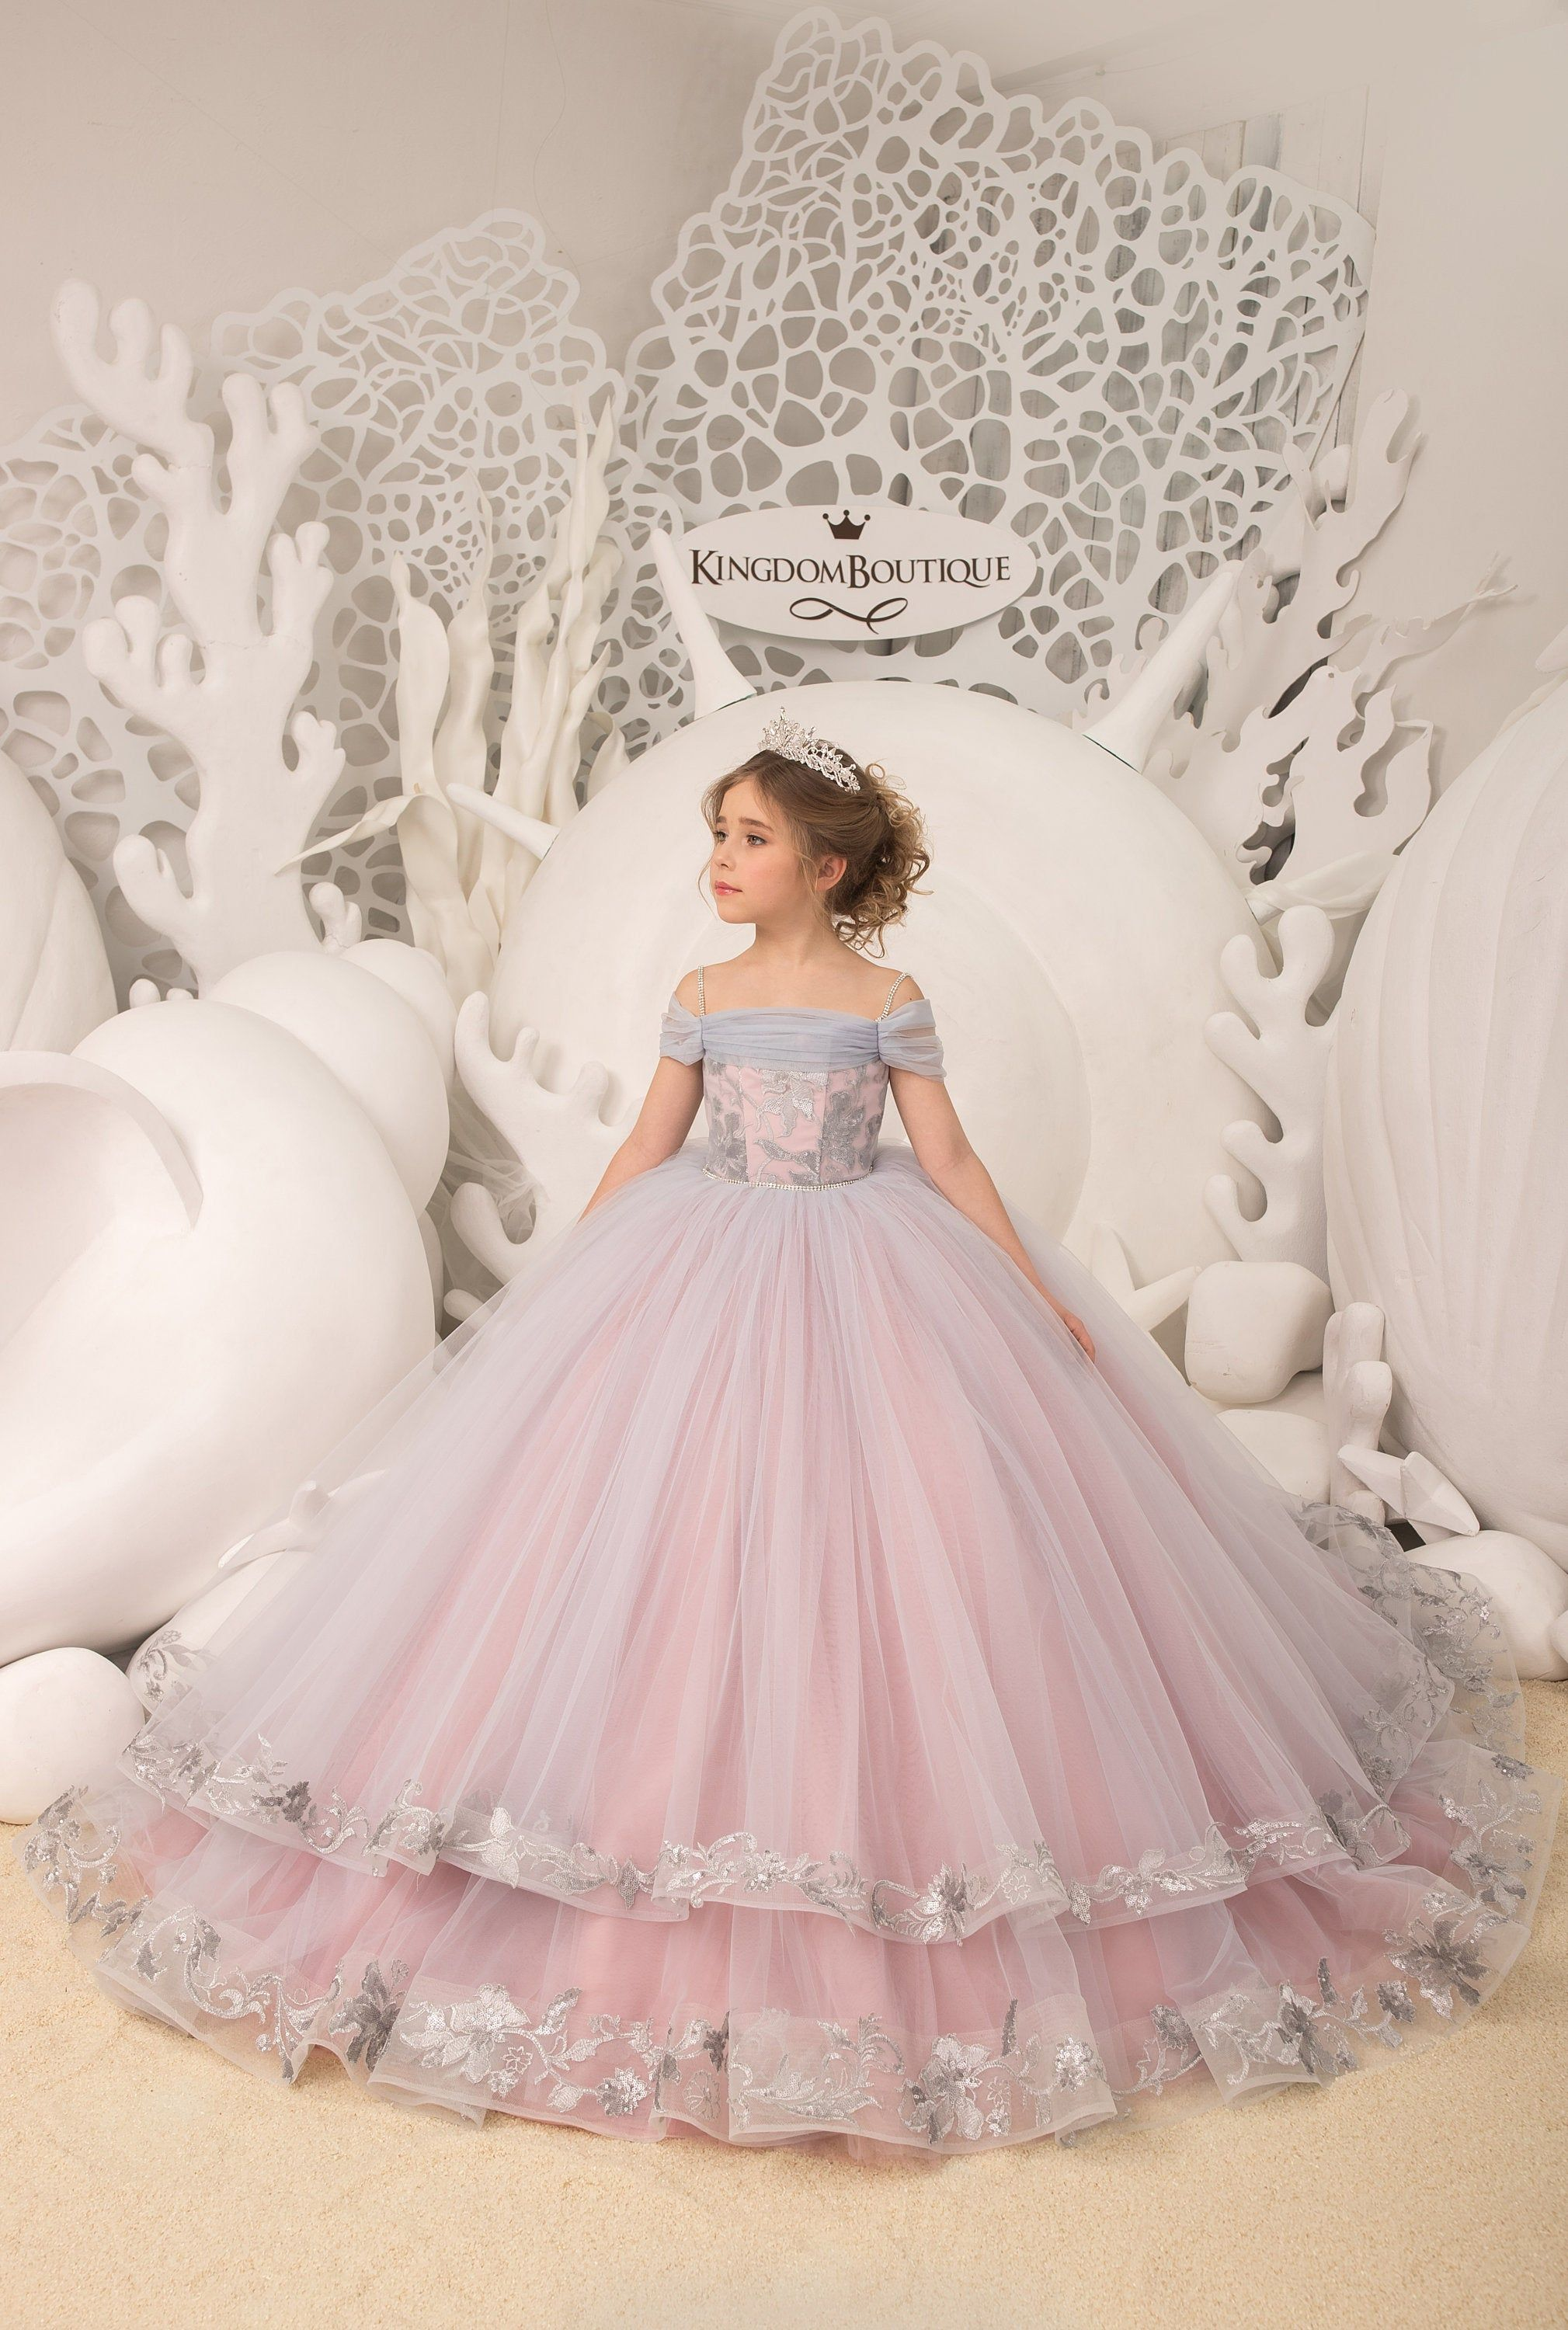 Silver flower girl dress Wedding holiday Birthday party Bridesmaids silver a cappuccino flower girl dress toddler Flower girl dress ivory